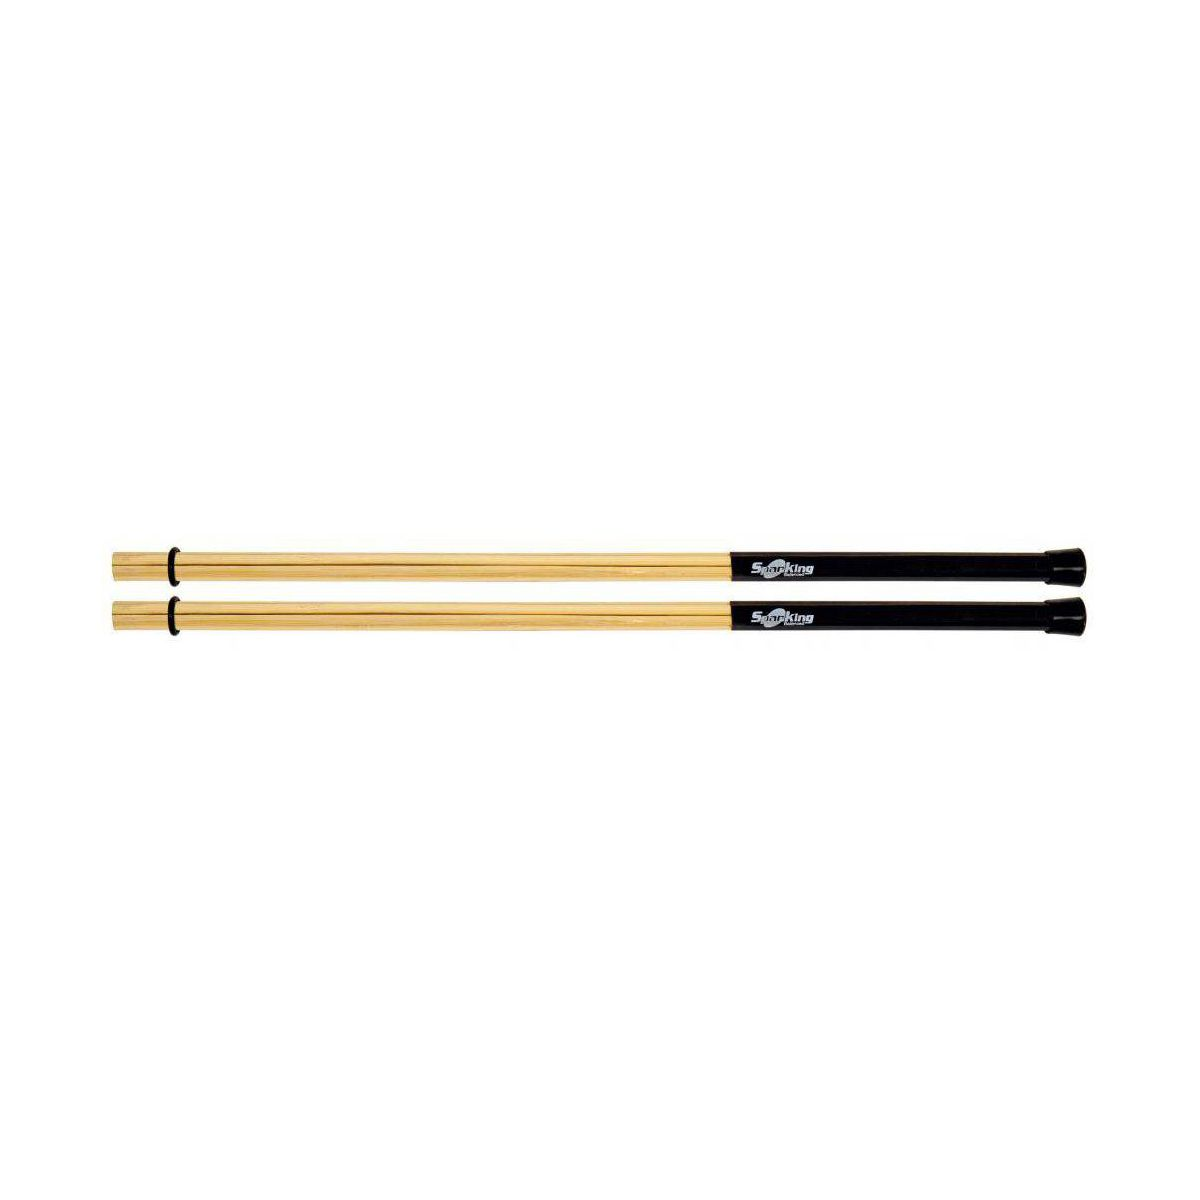 Baqueta Spanking RODS STICK Bamboo Natural